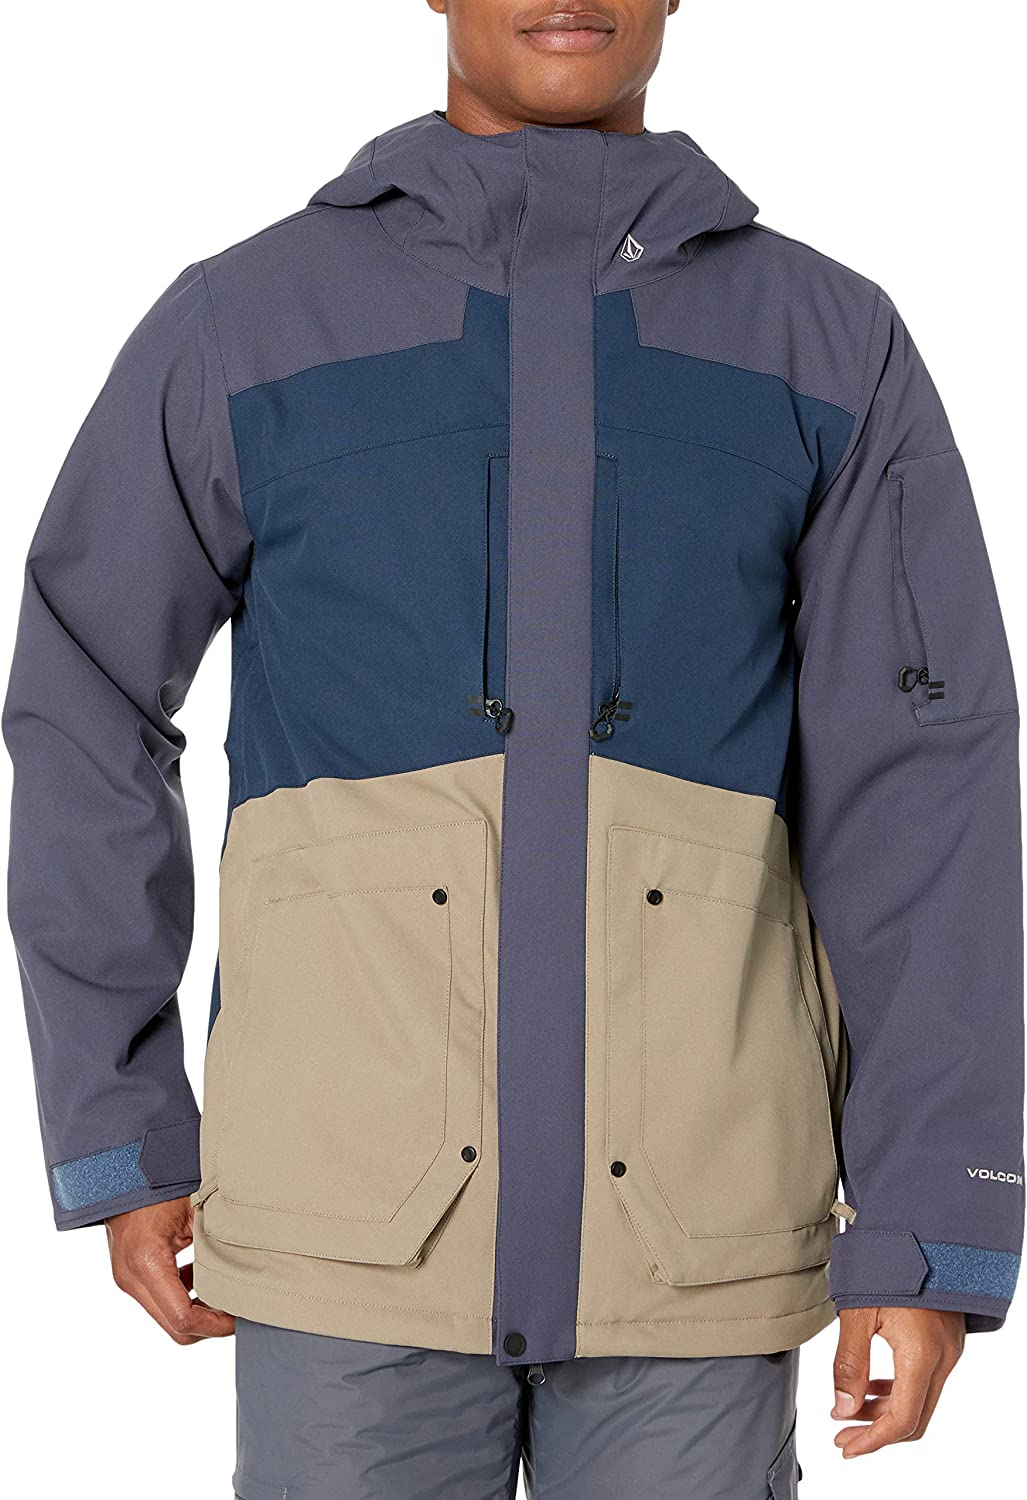 Volcom Men's Scorth Insulated Snow Jacket: Clothing